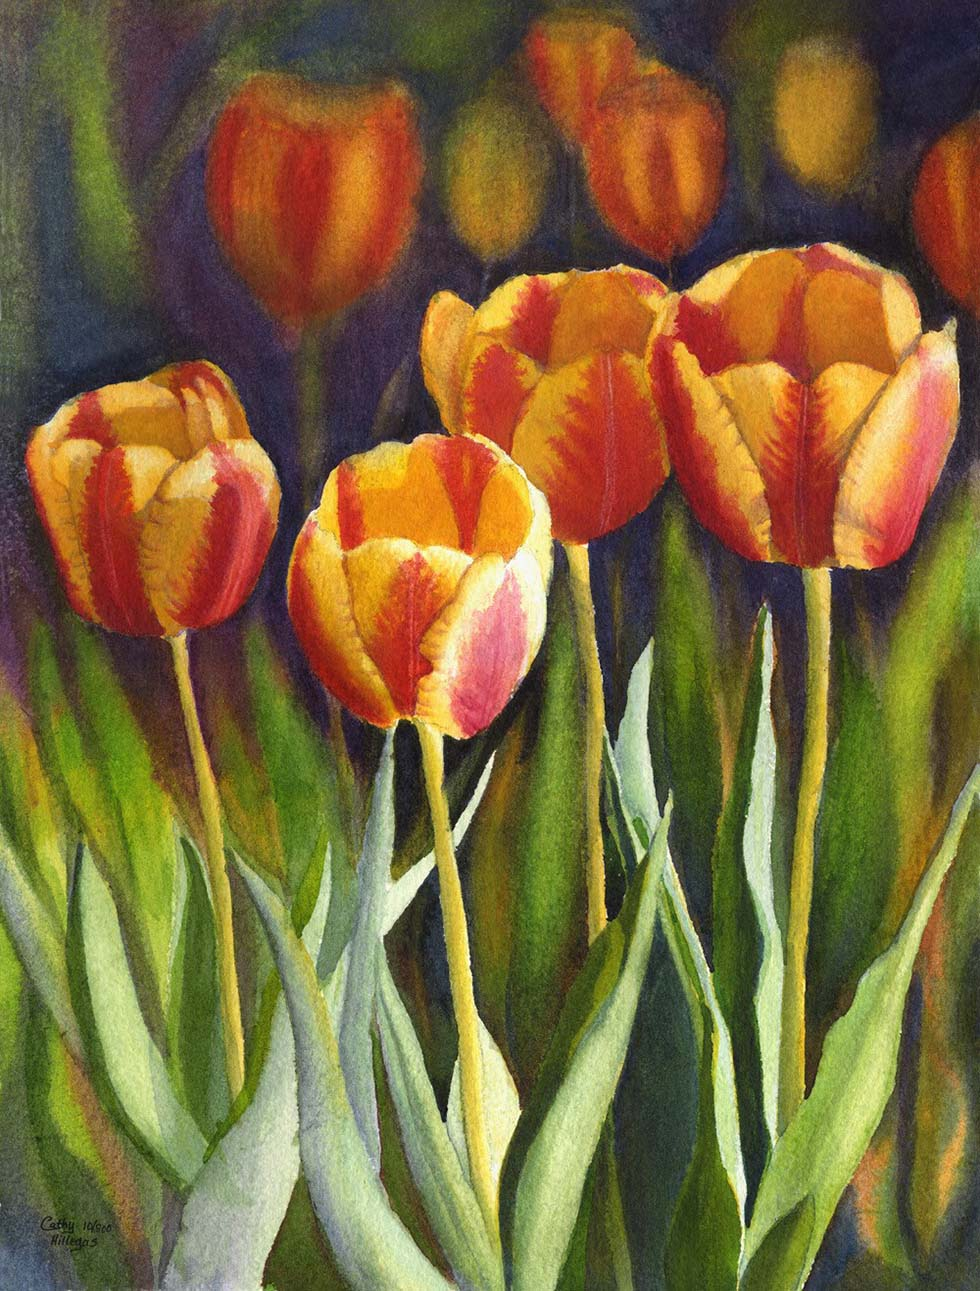 watercolor painting tulip flower by cathy hillegas